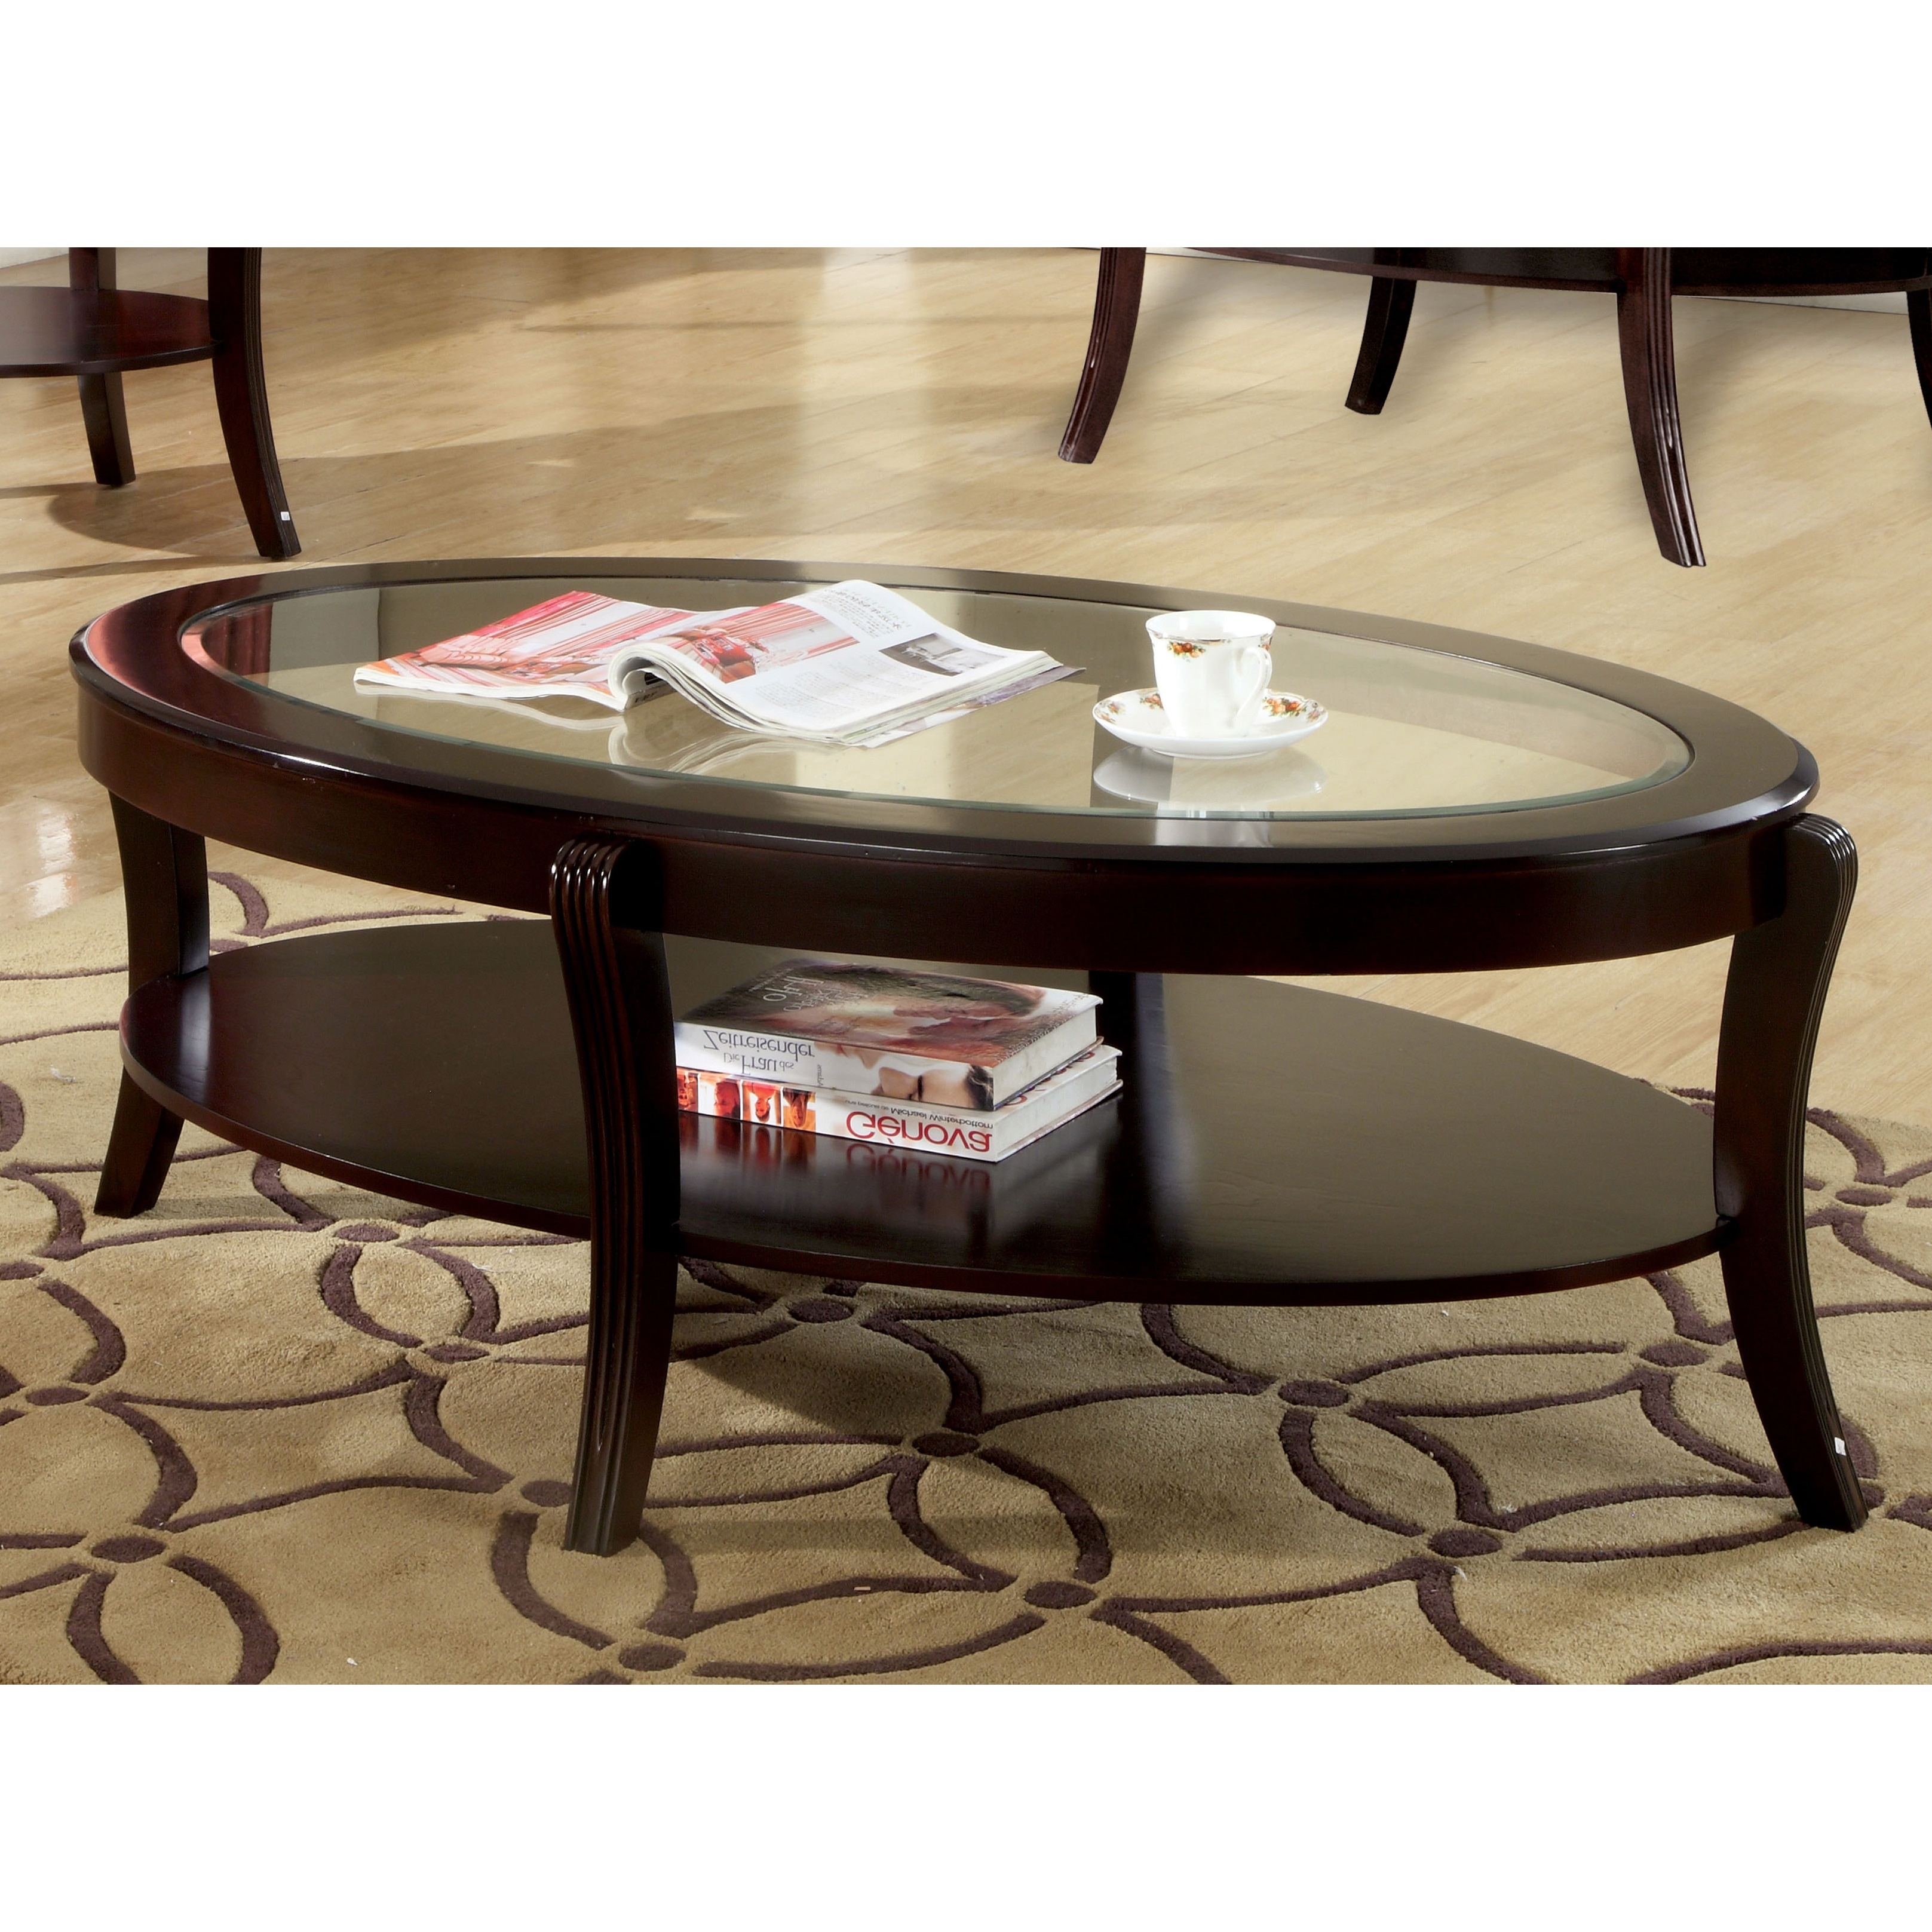 Furniture Of America Carline Modern Espresso Coffee Table On Free Shipping Today 9918603